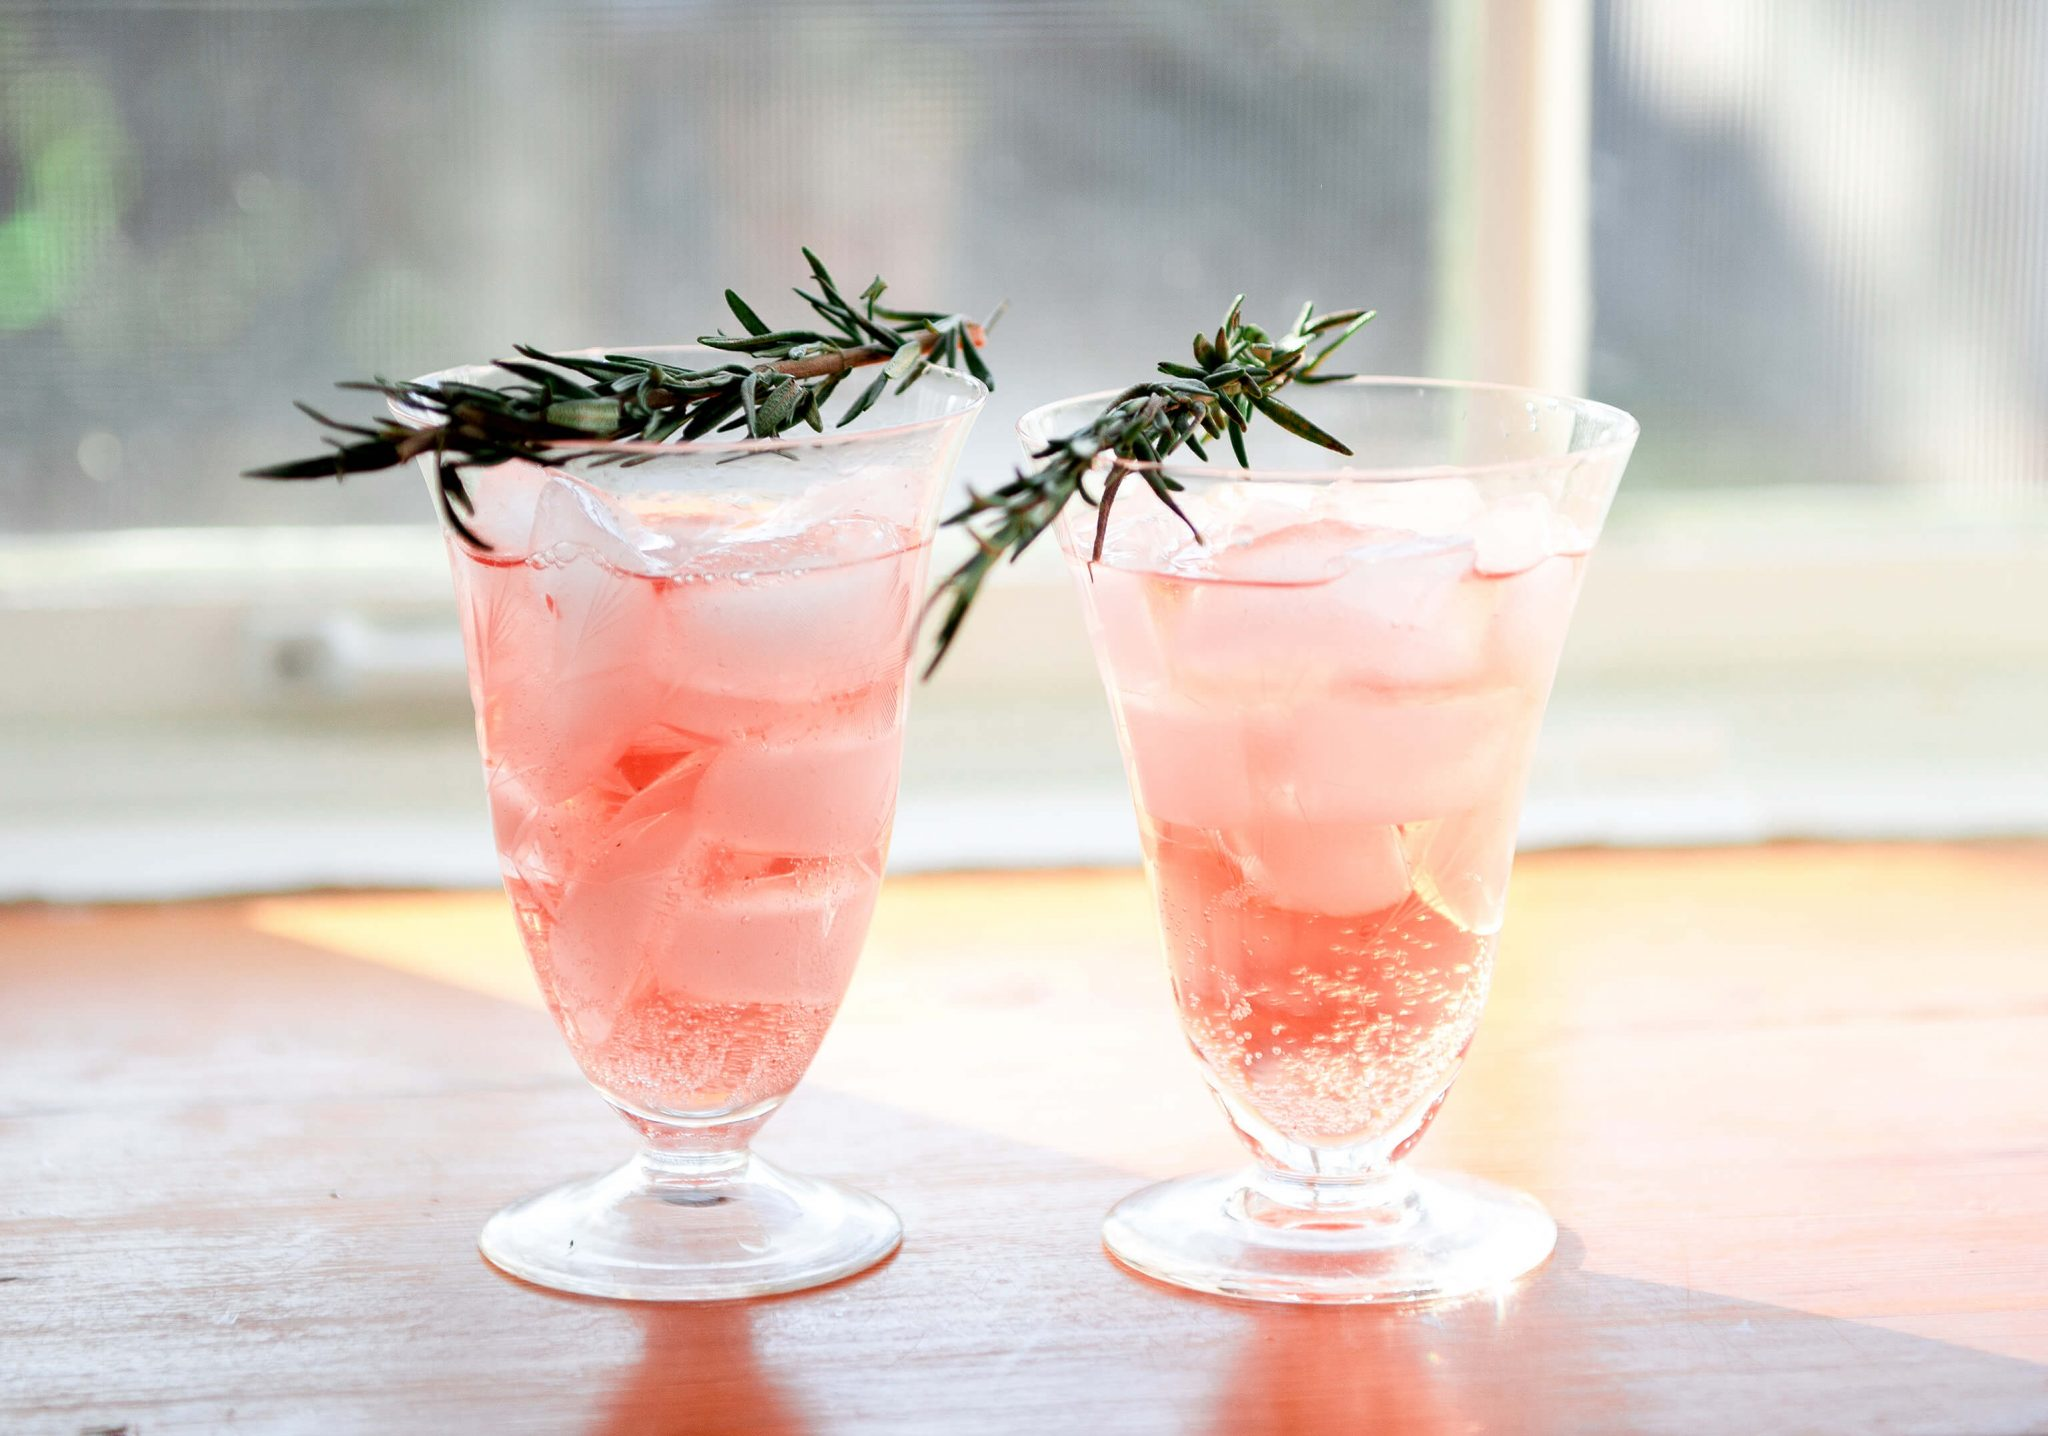 2 pink beverages garnished with rosemary